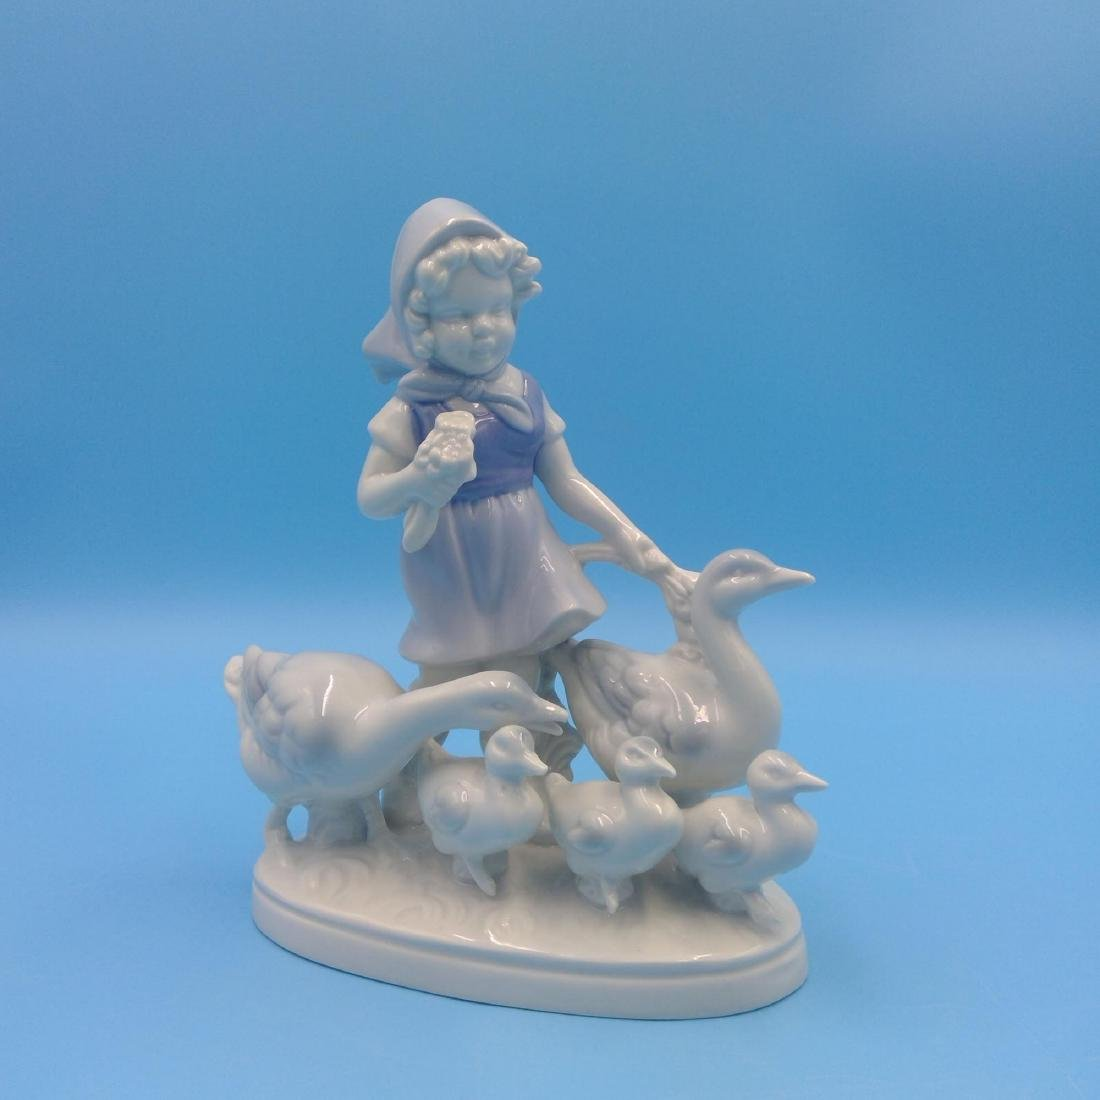 GROUP OF 7 GERMAN PORCELAIN FIGURINES - 5